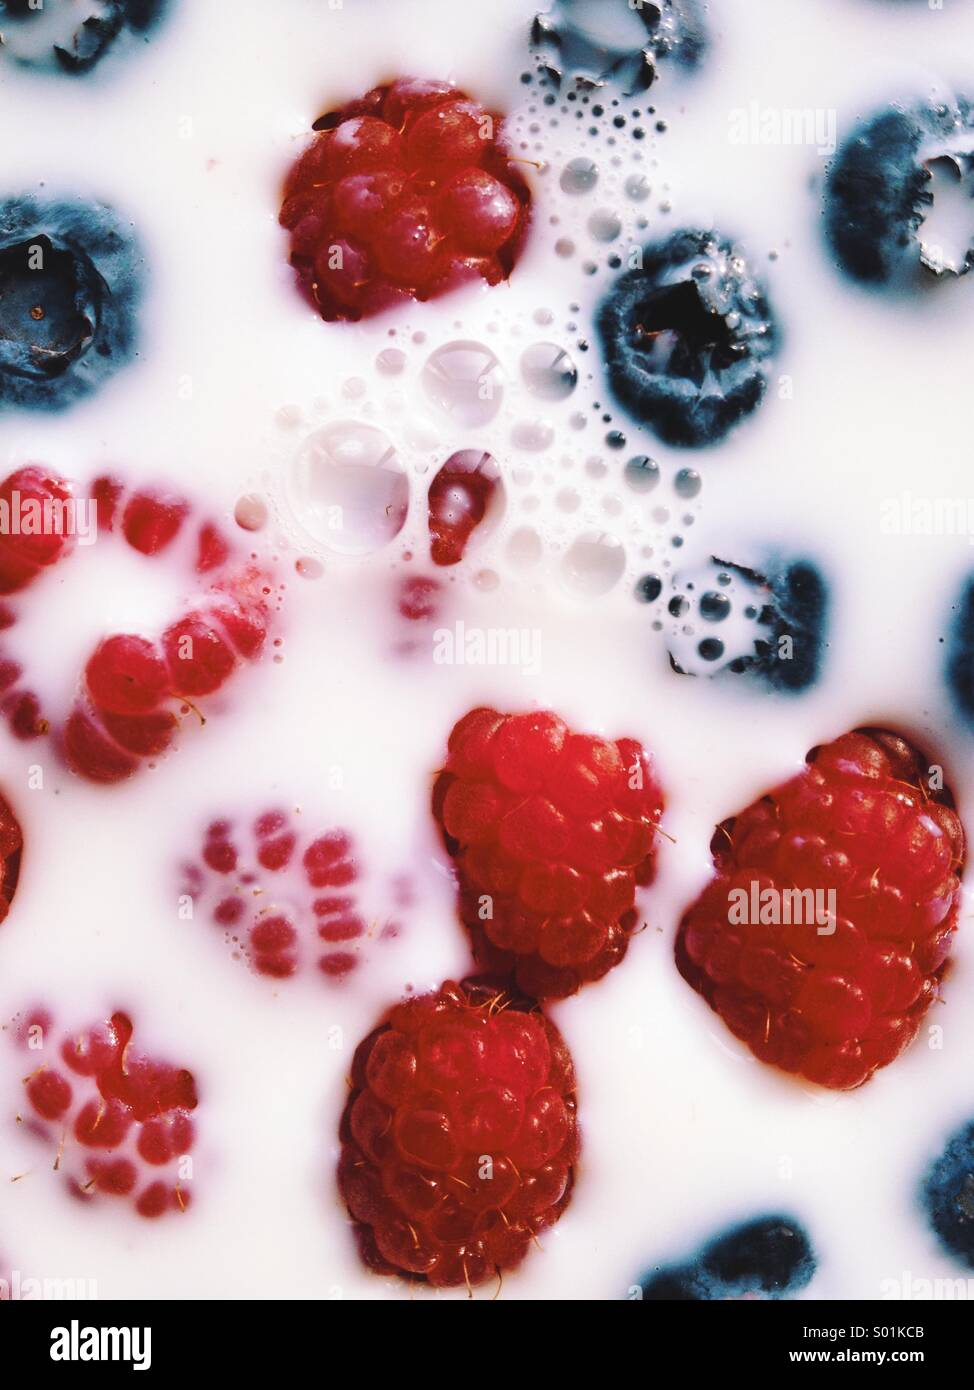 Raspberries and Blueberries in Milk - Stock Image